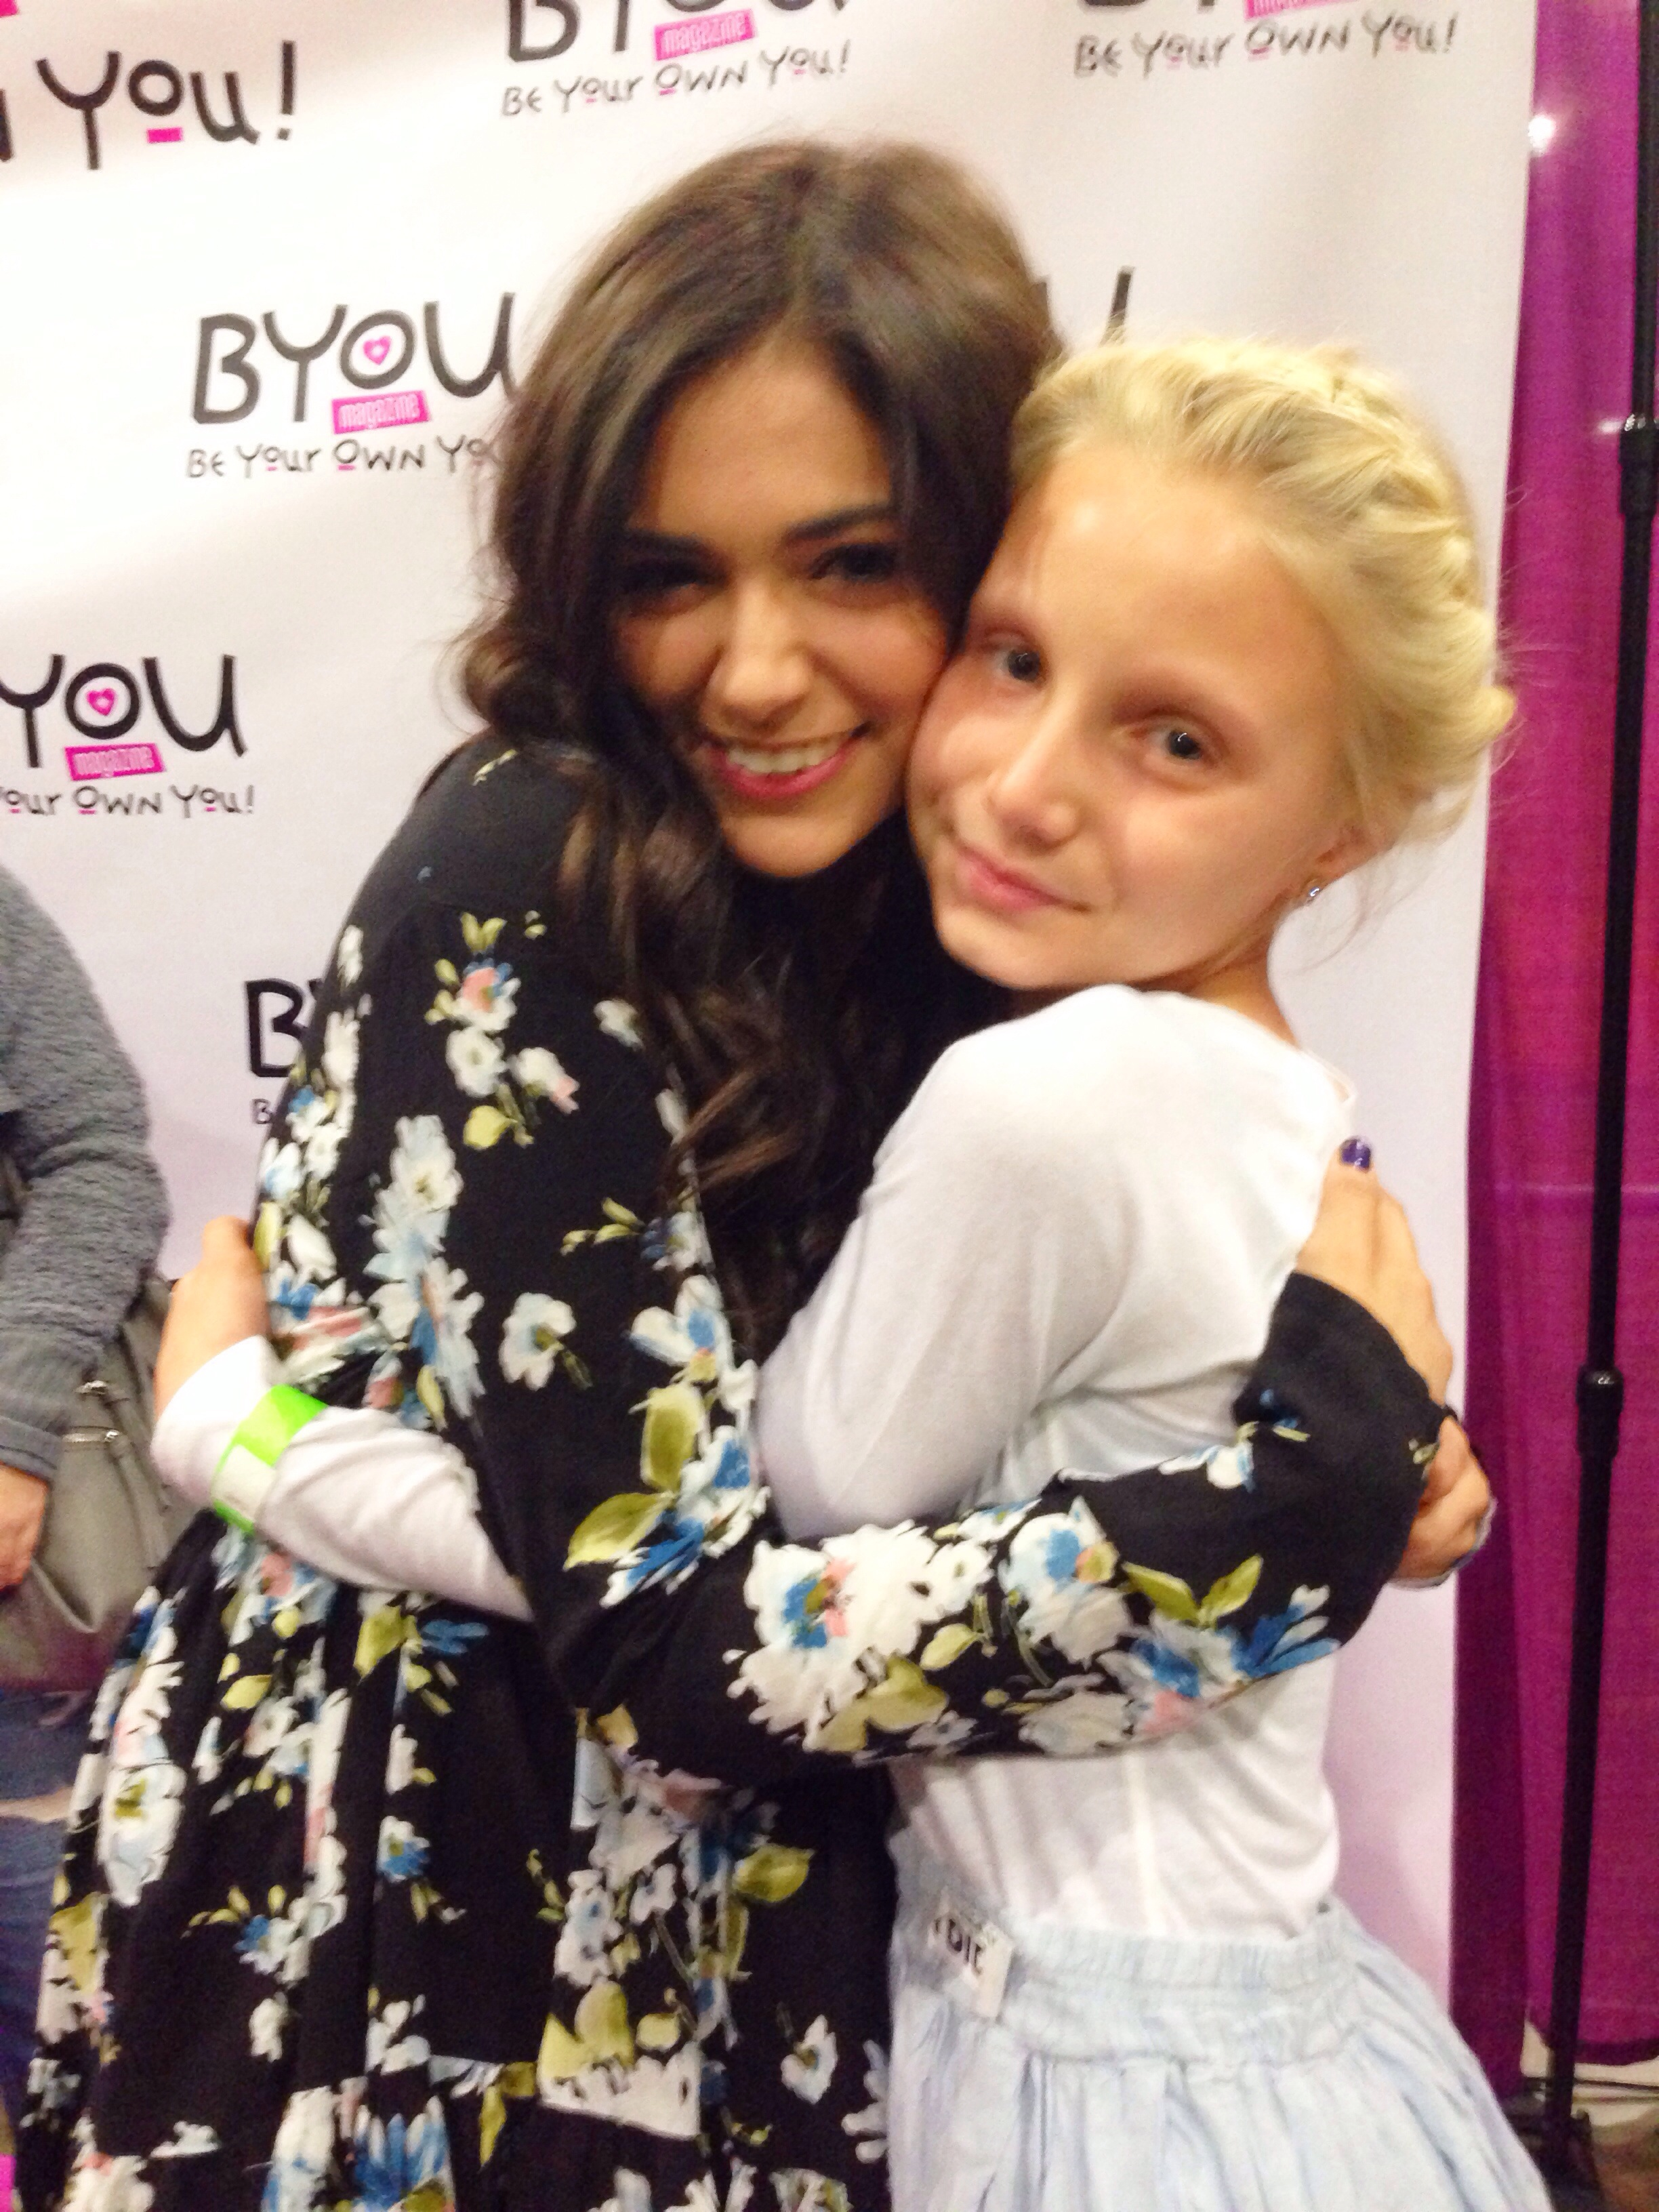 Bethany mota will celebrate the launch of her clothing line at mall 20131205 223937g bethany mota fans have been m4hsunfo